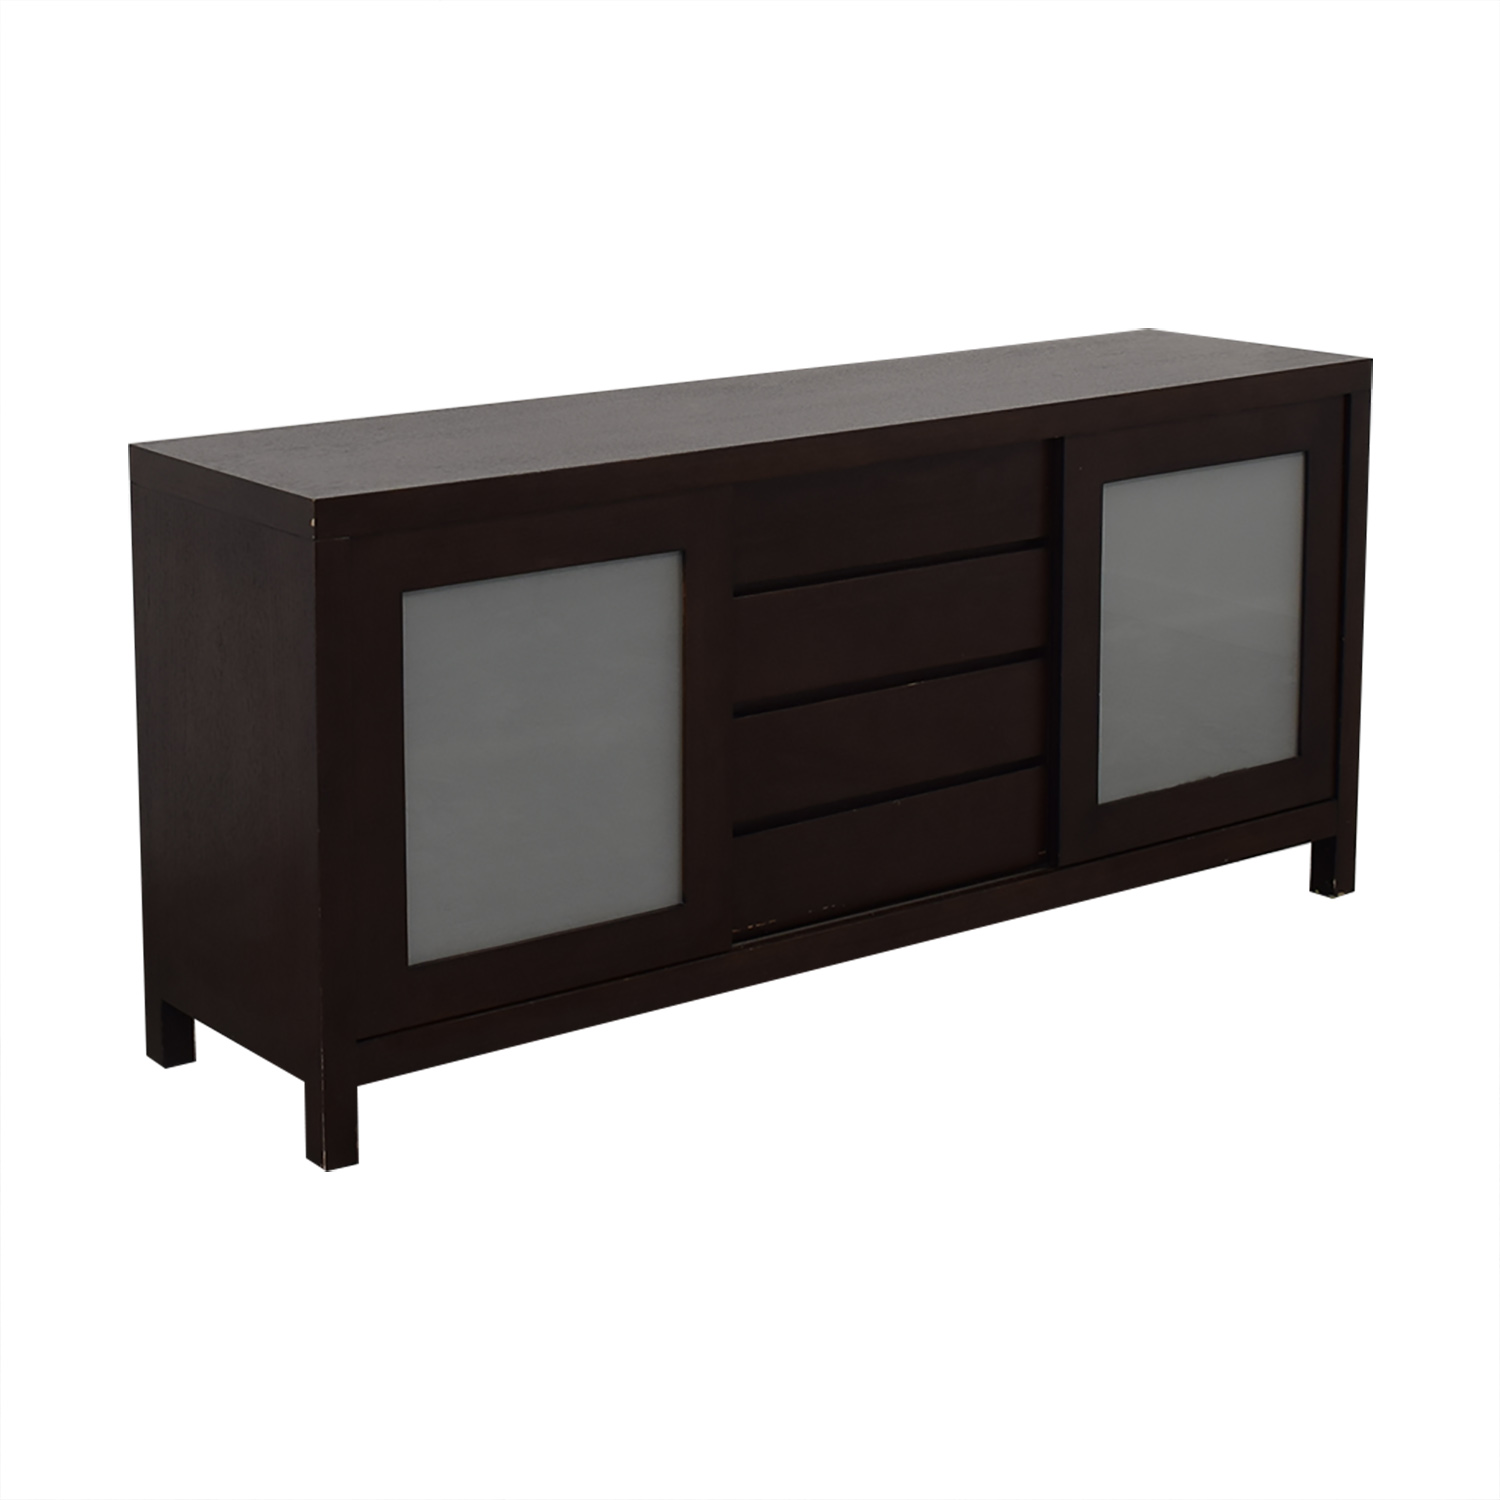 Crate & Barrel Crate & Barrel Sideboard with Cabinets